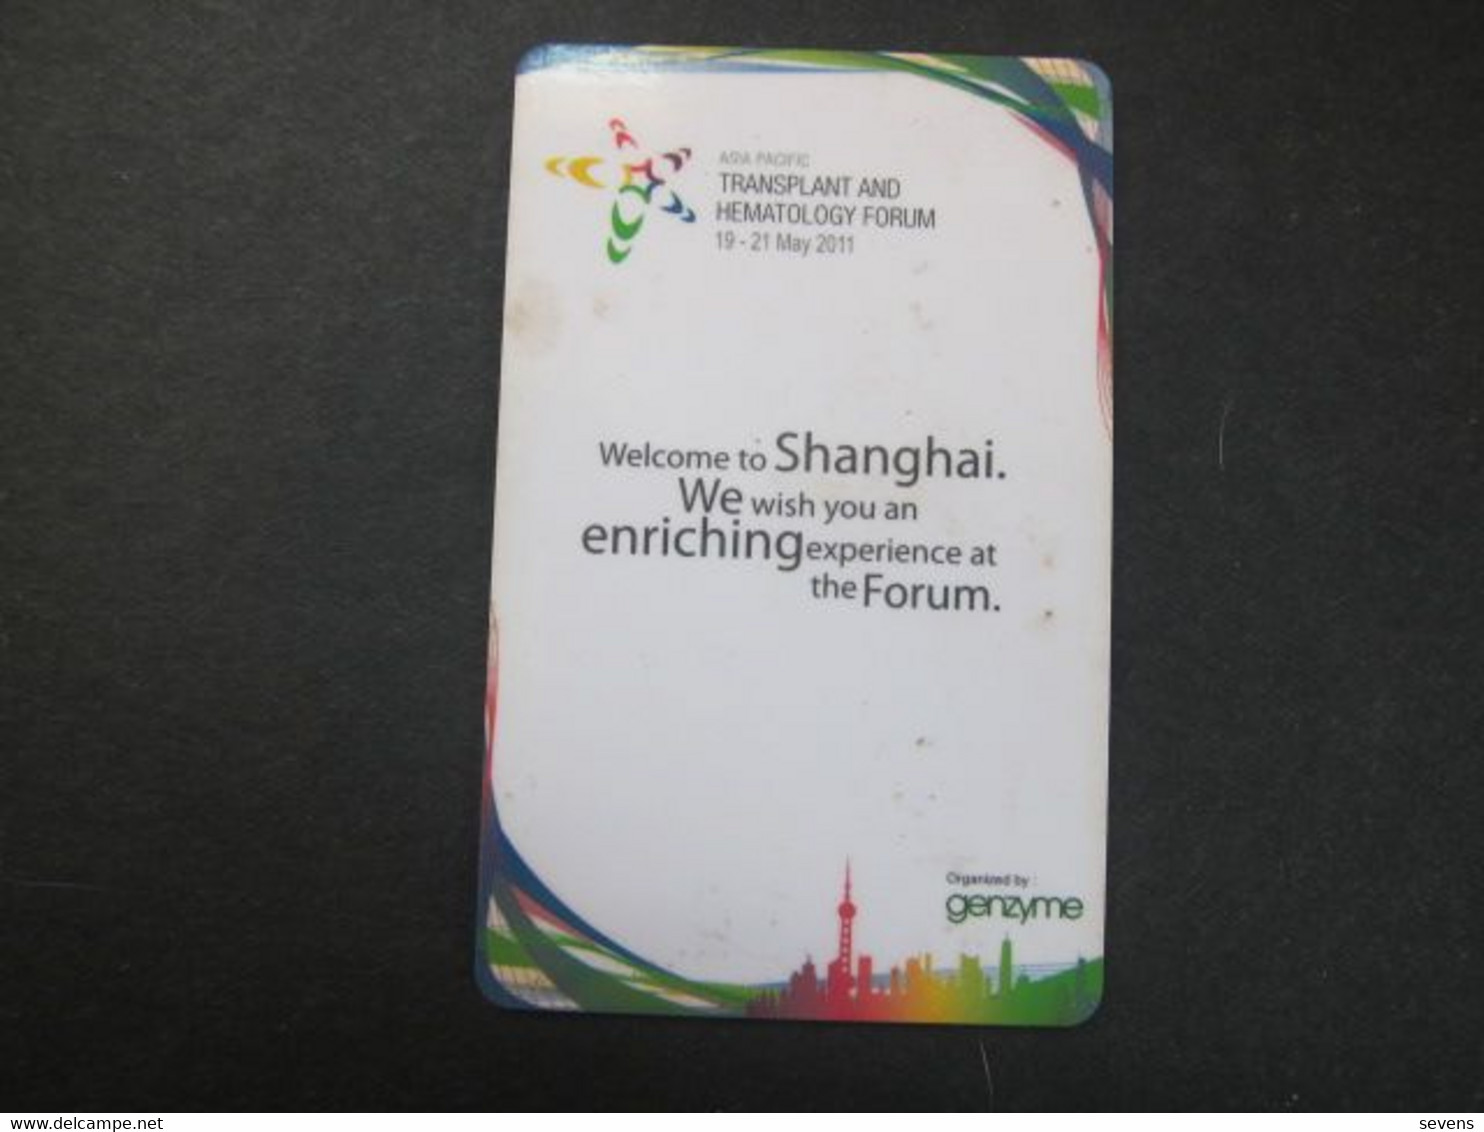 Asia Pacific Transplant And Hematology Forum Magnetic Card - Unclassified